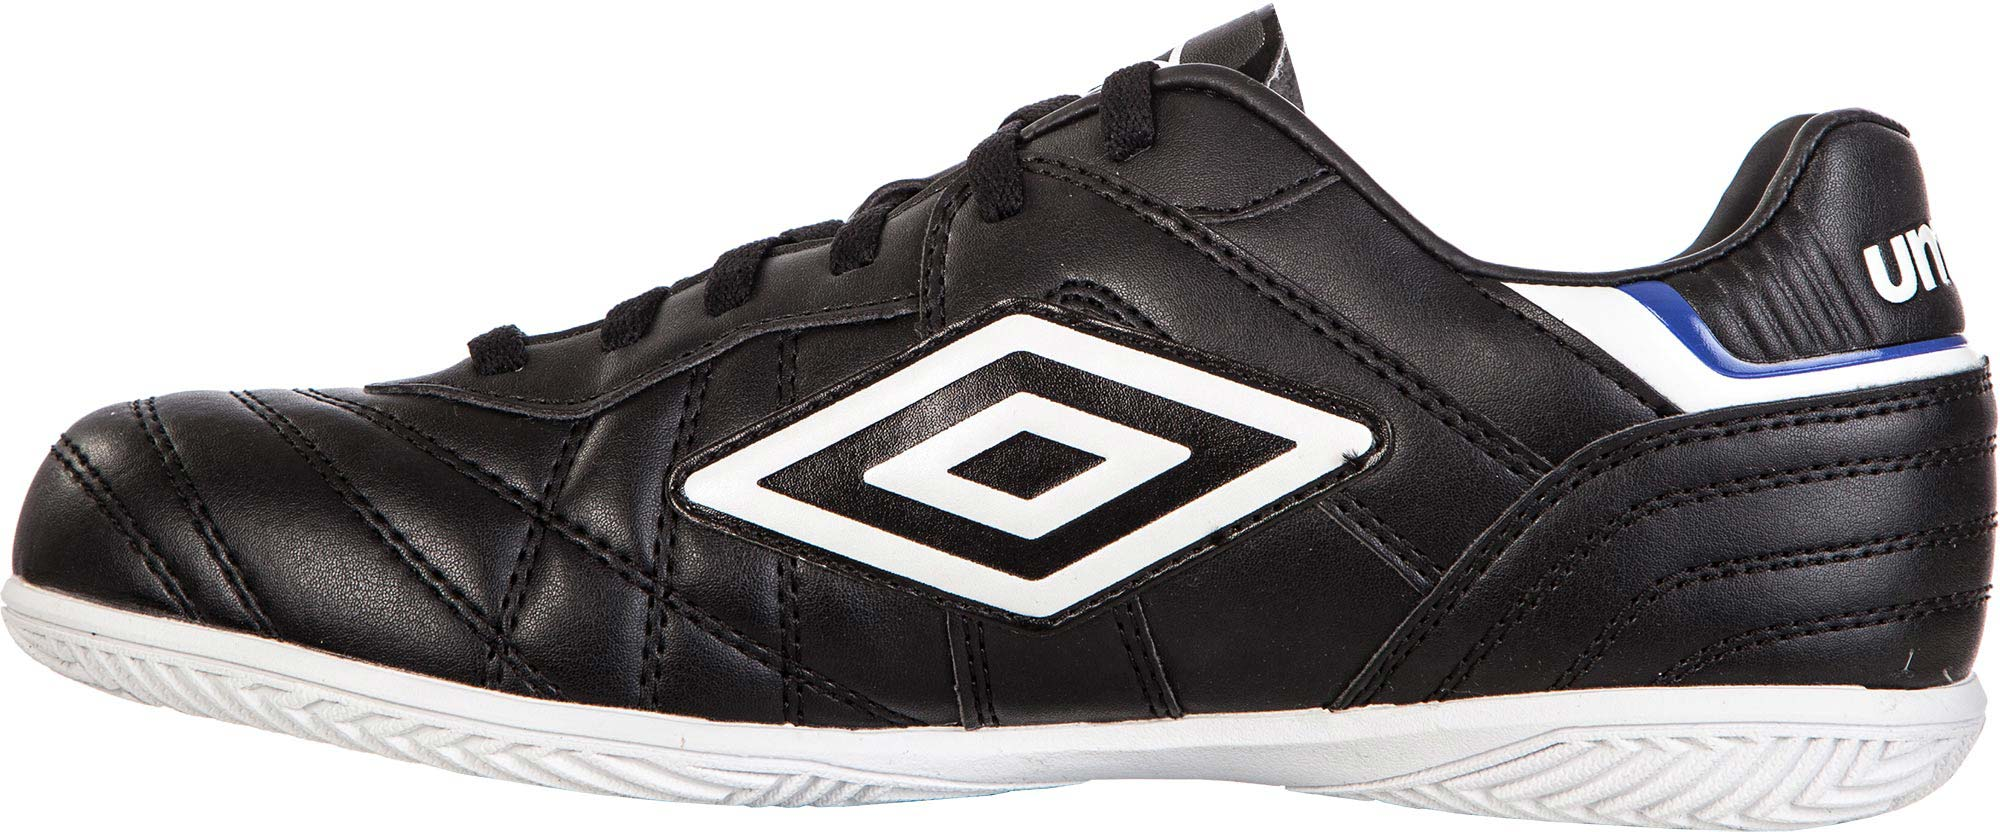 1e5b31ffd85 Umbro SPECIALI ETERNAL CLUB IC